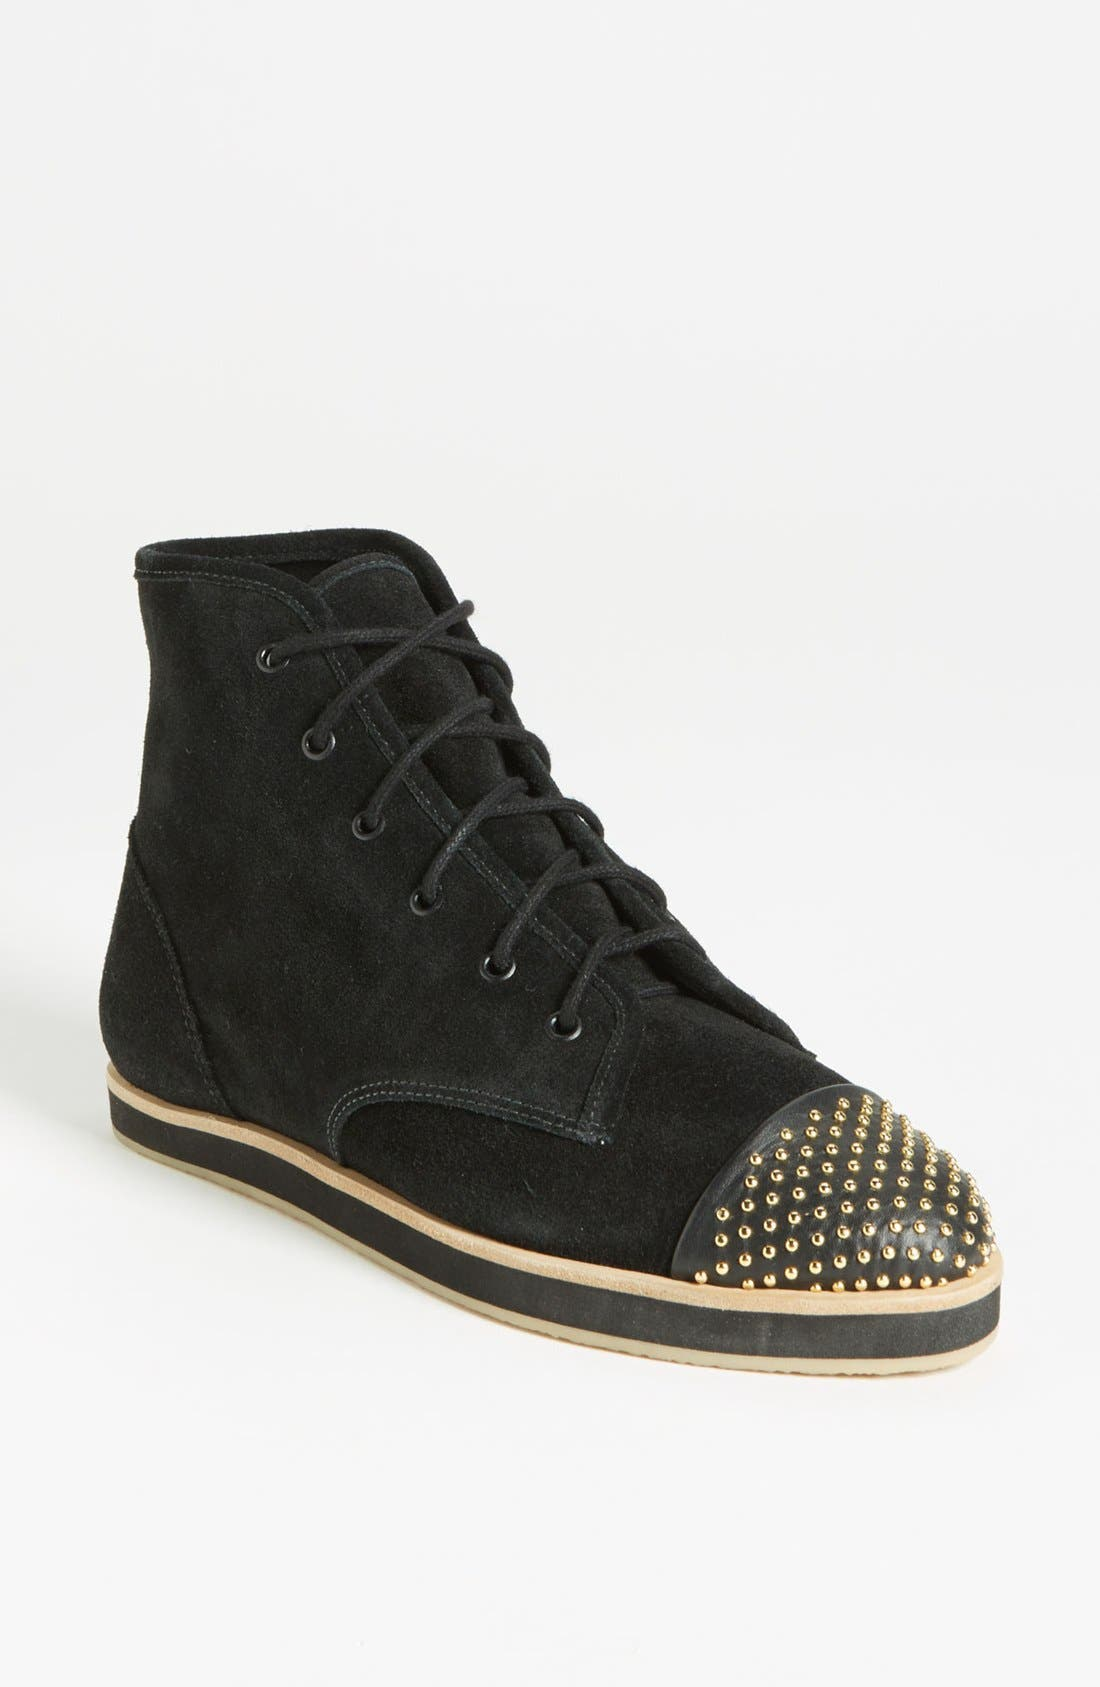 Alternate Image 1 Selected - Loeffler Randall 'Octavia' Boot (Online Only)